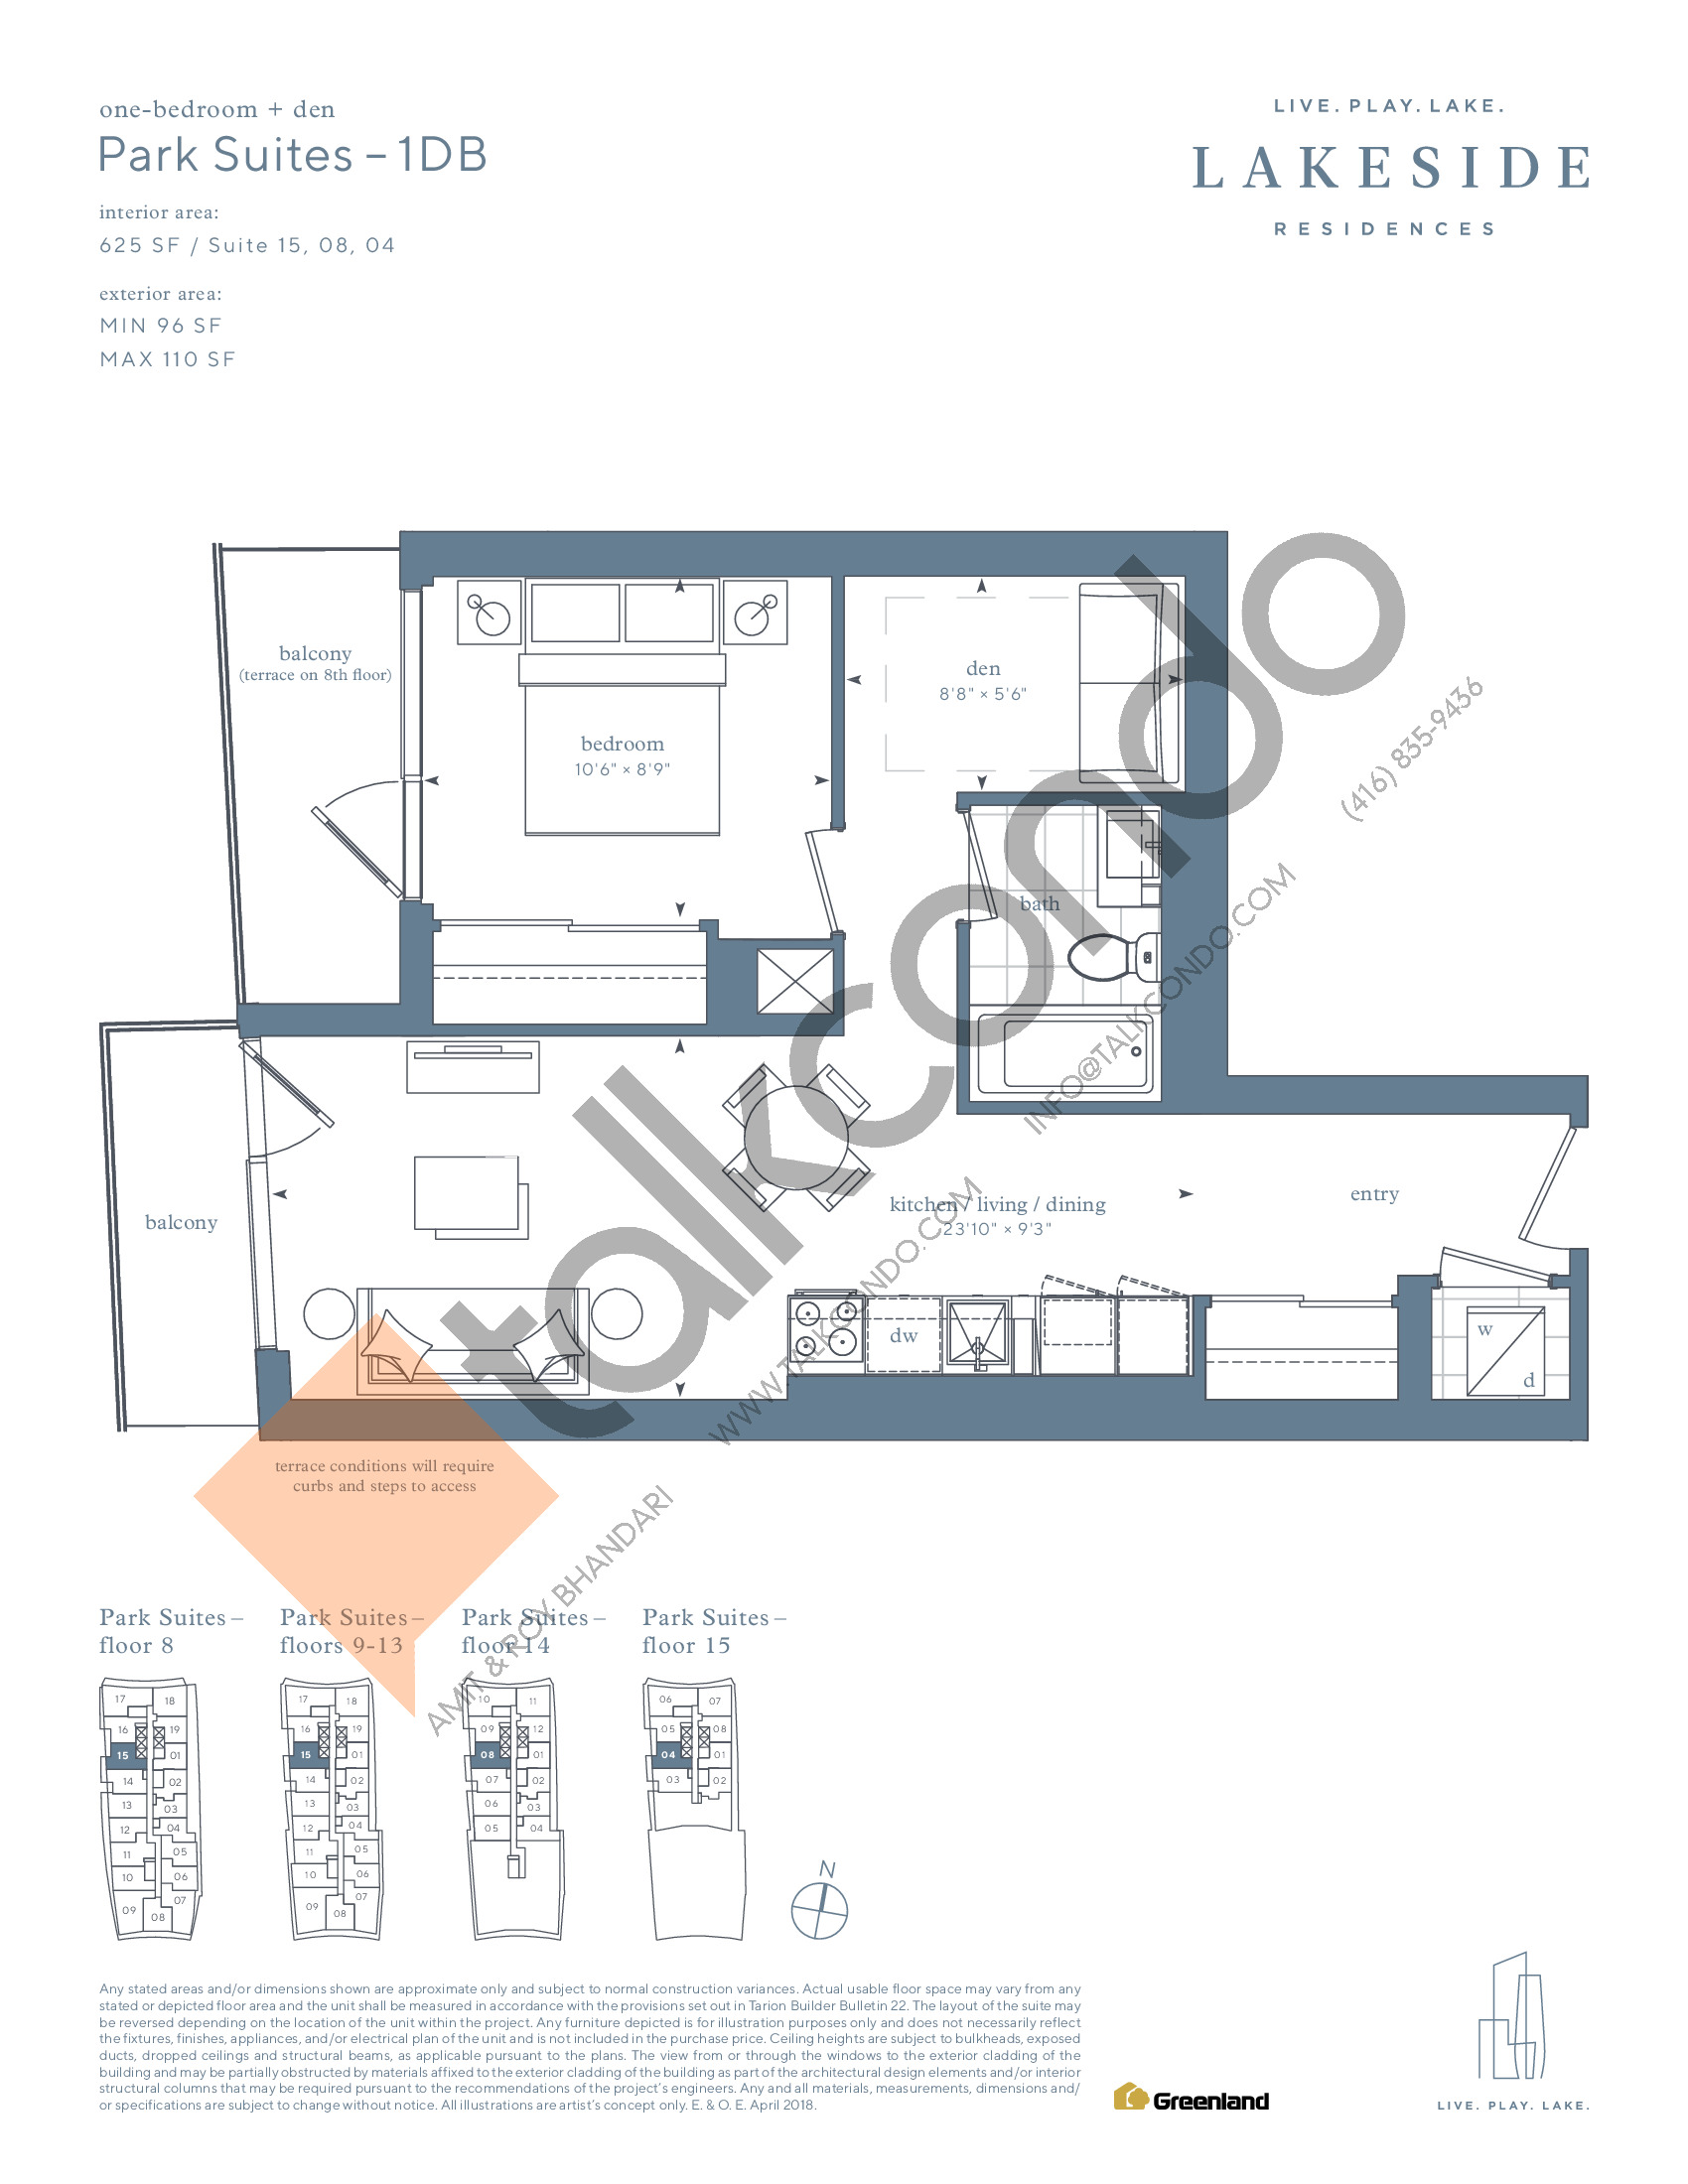 Park Suites - 1DB Floor Plan at Lakeside Residences - 625 sq.ft